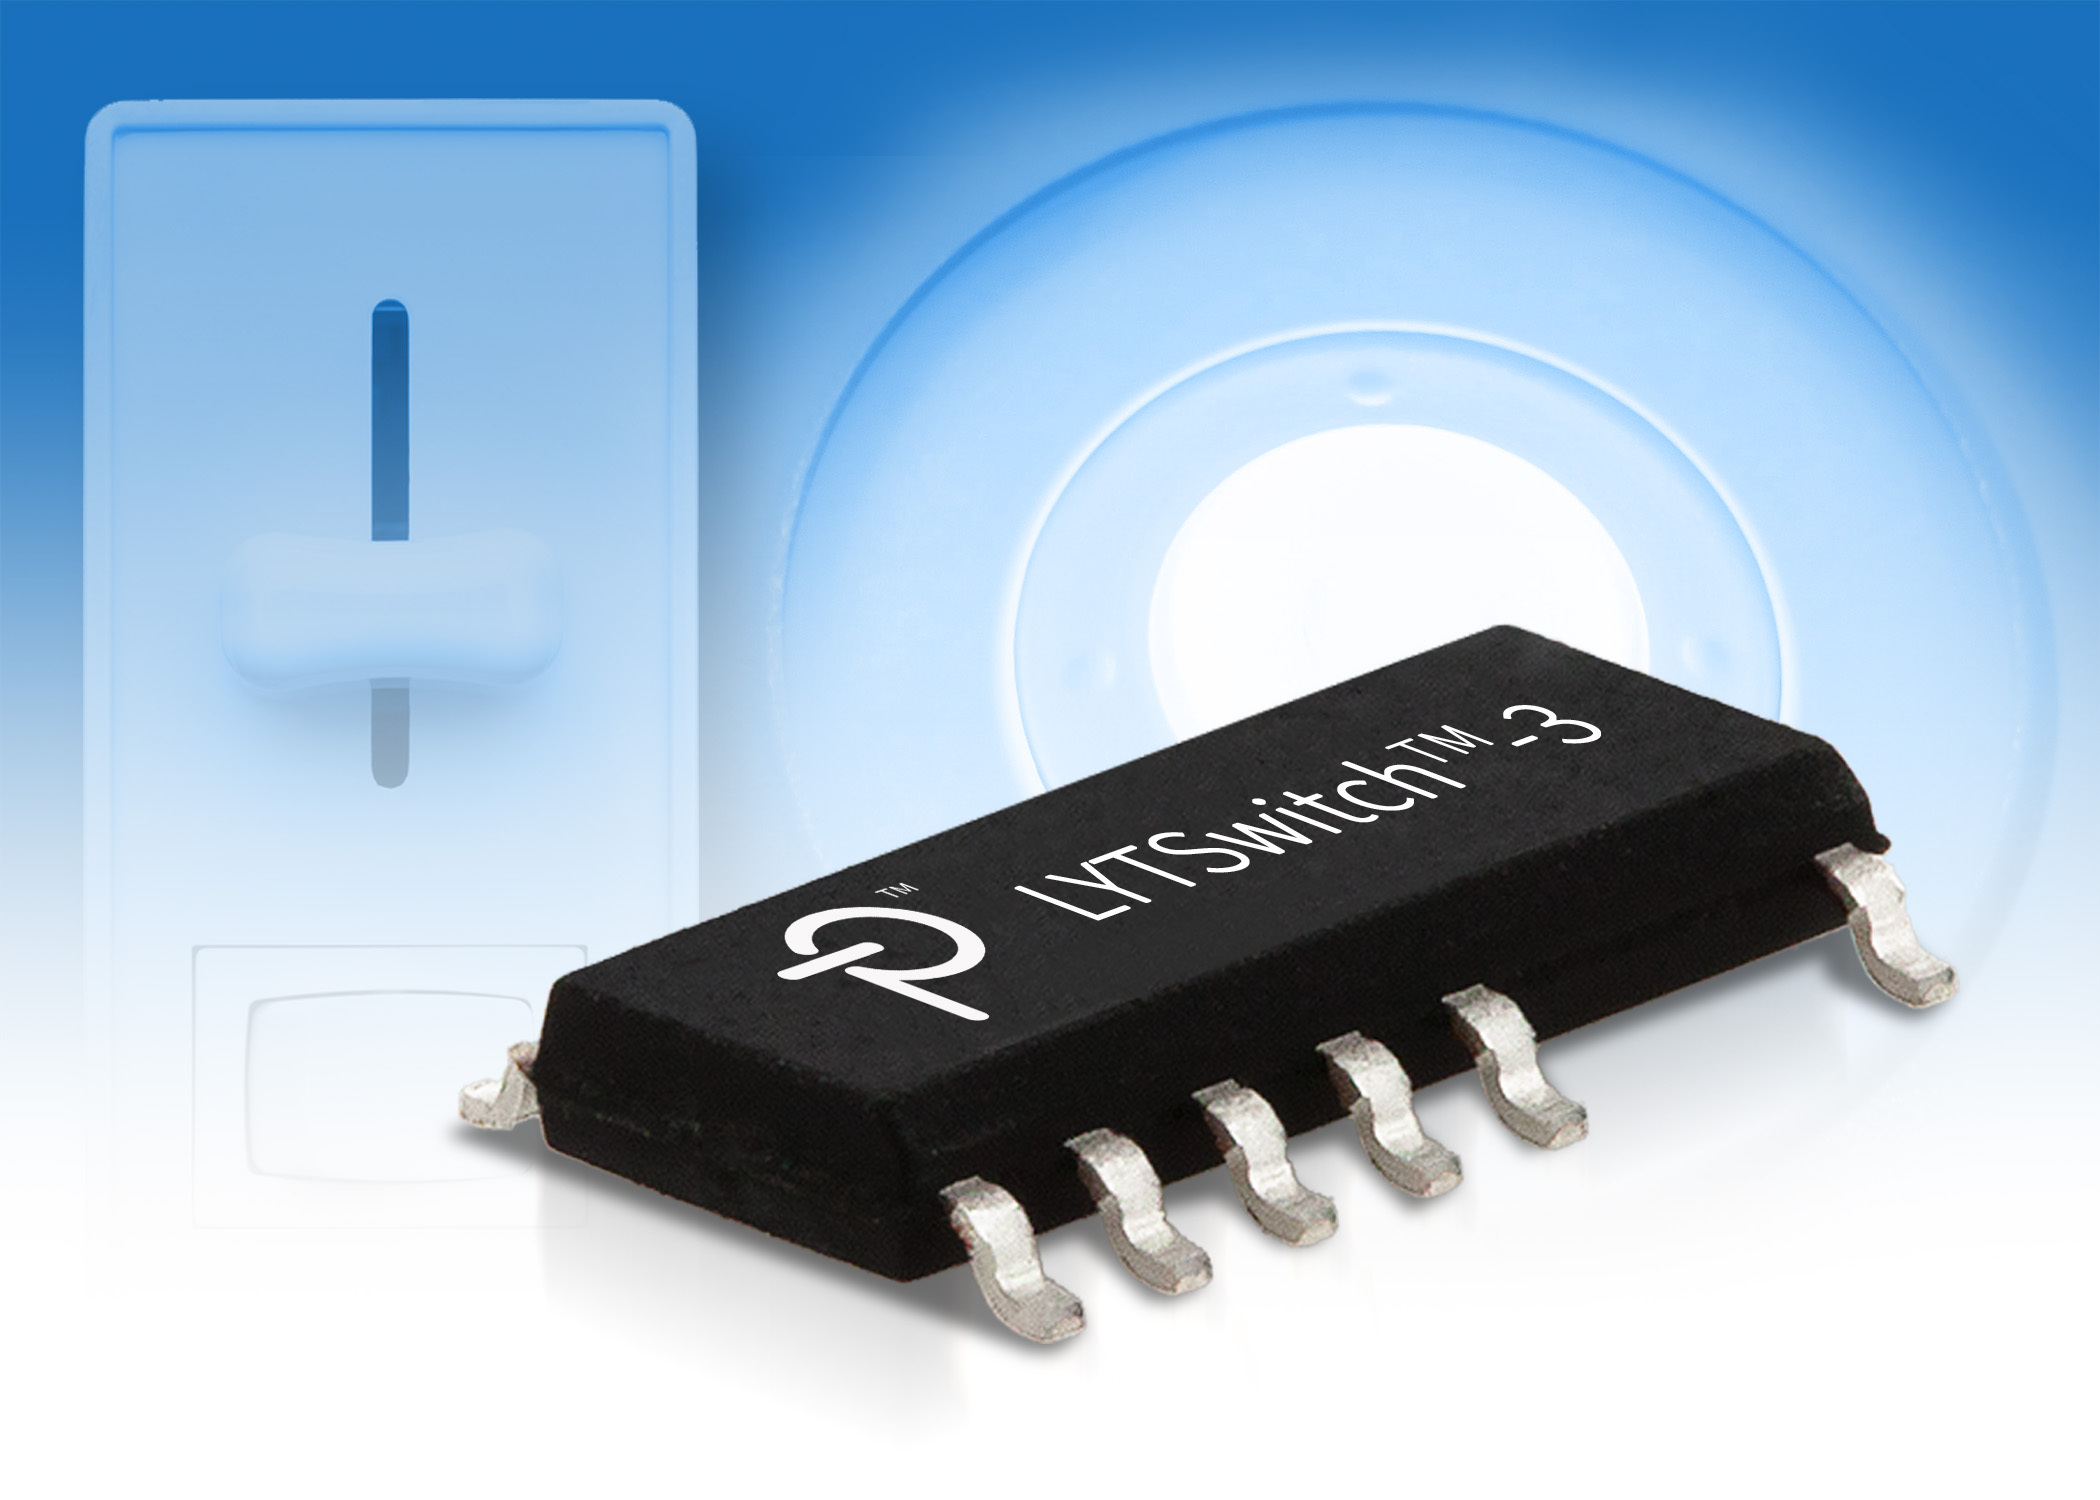 LYTSwitch-3 LED Driver ICs (Photo: Business Wire)